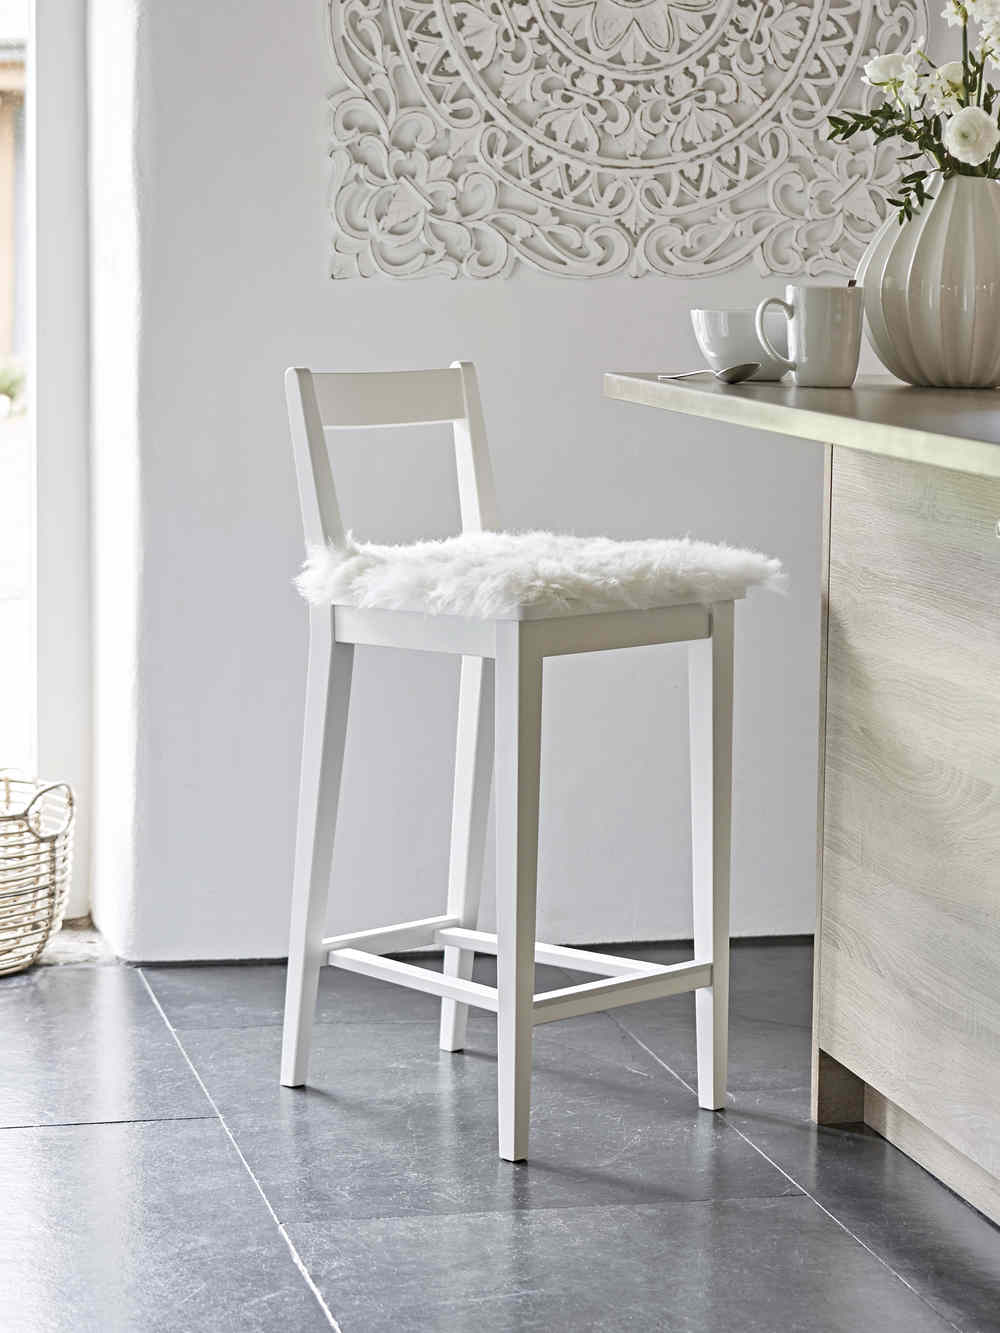 wooden kitchen stools plastic containers white bar stool scandi breakfast